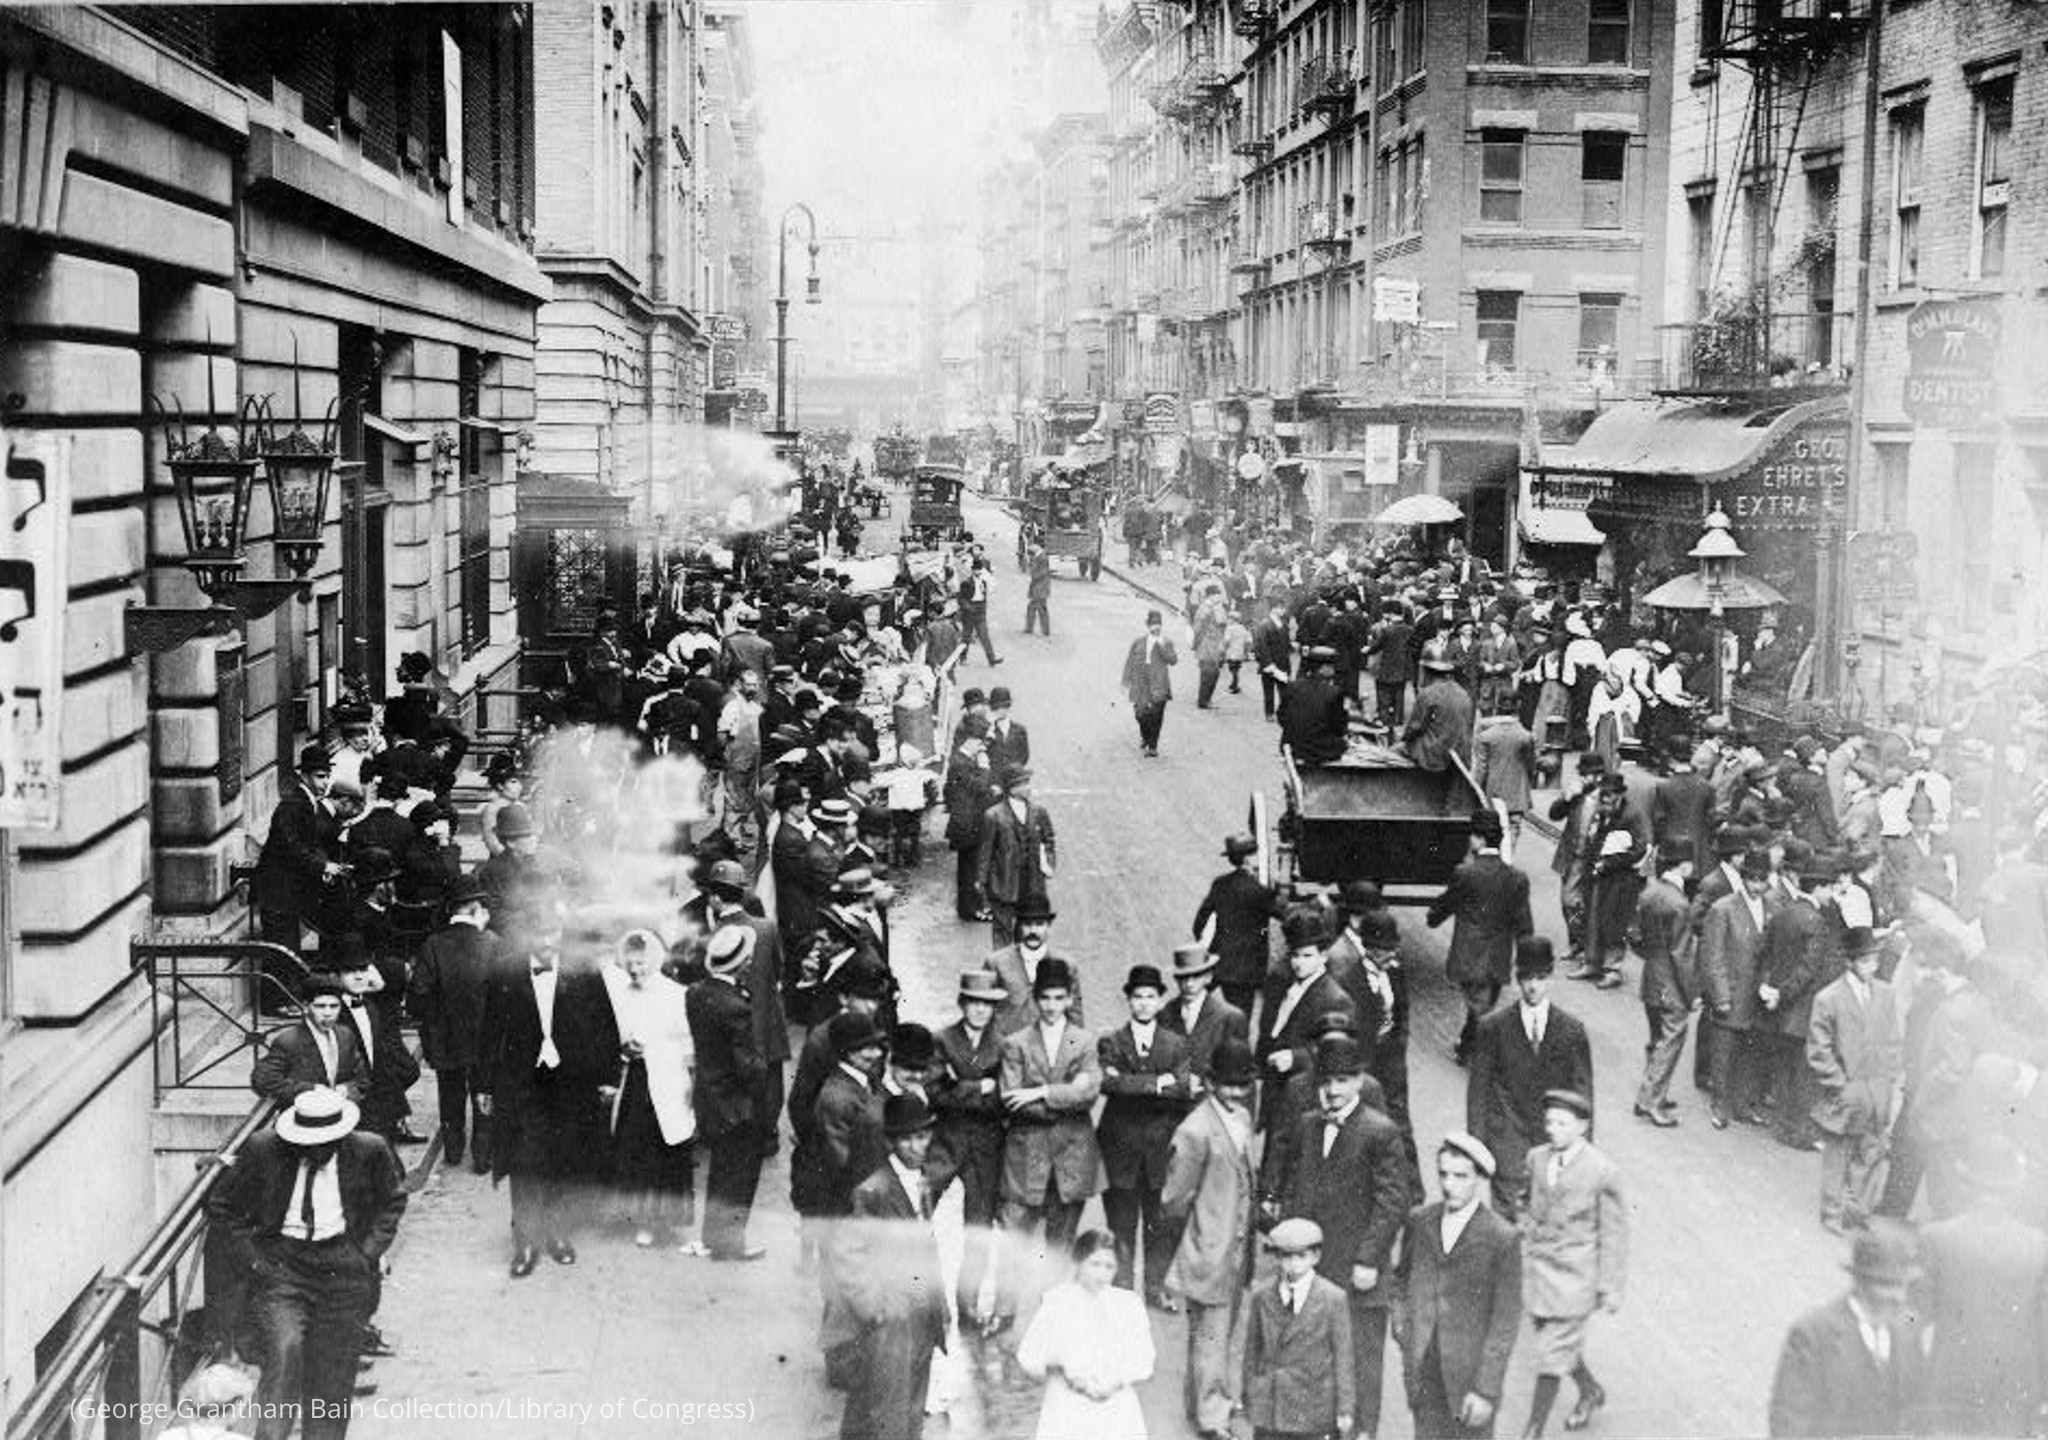 Historical photo of people standing in street (George Grantham Bain Collection/Library of Congress)